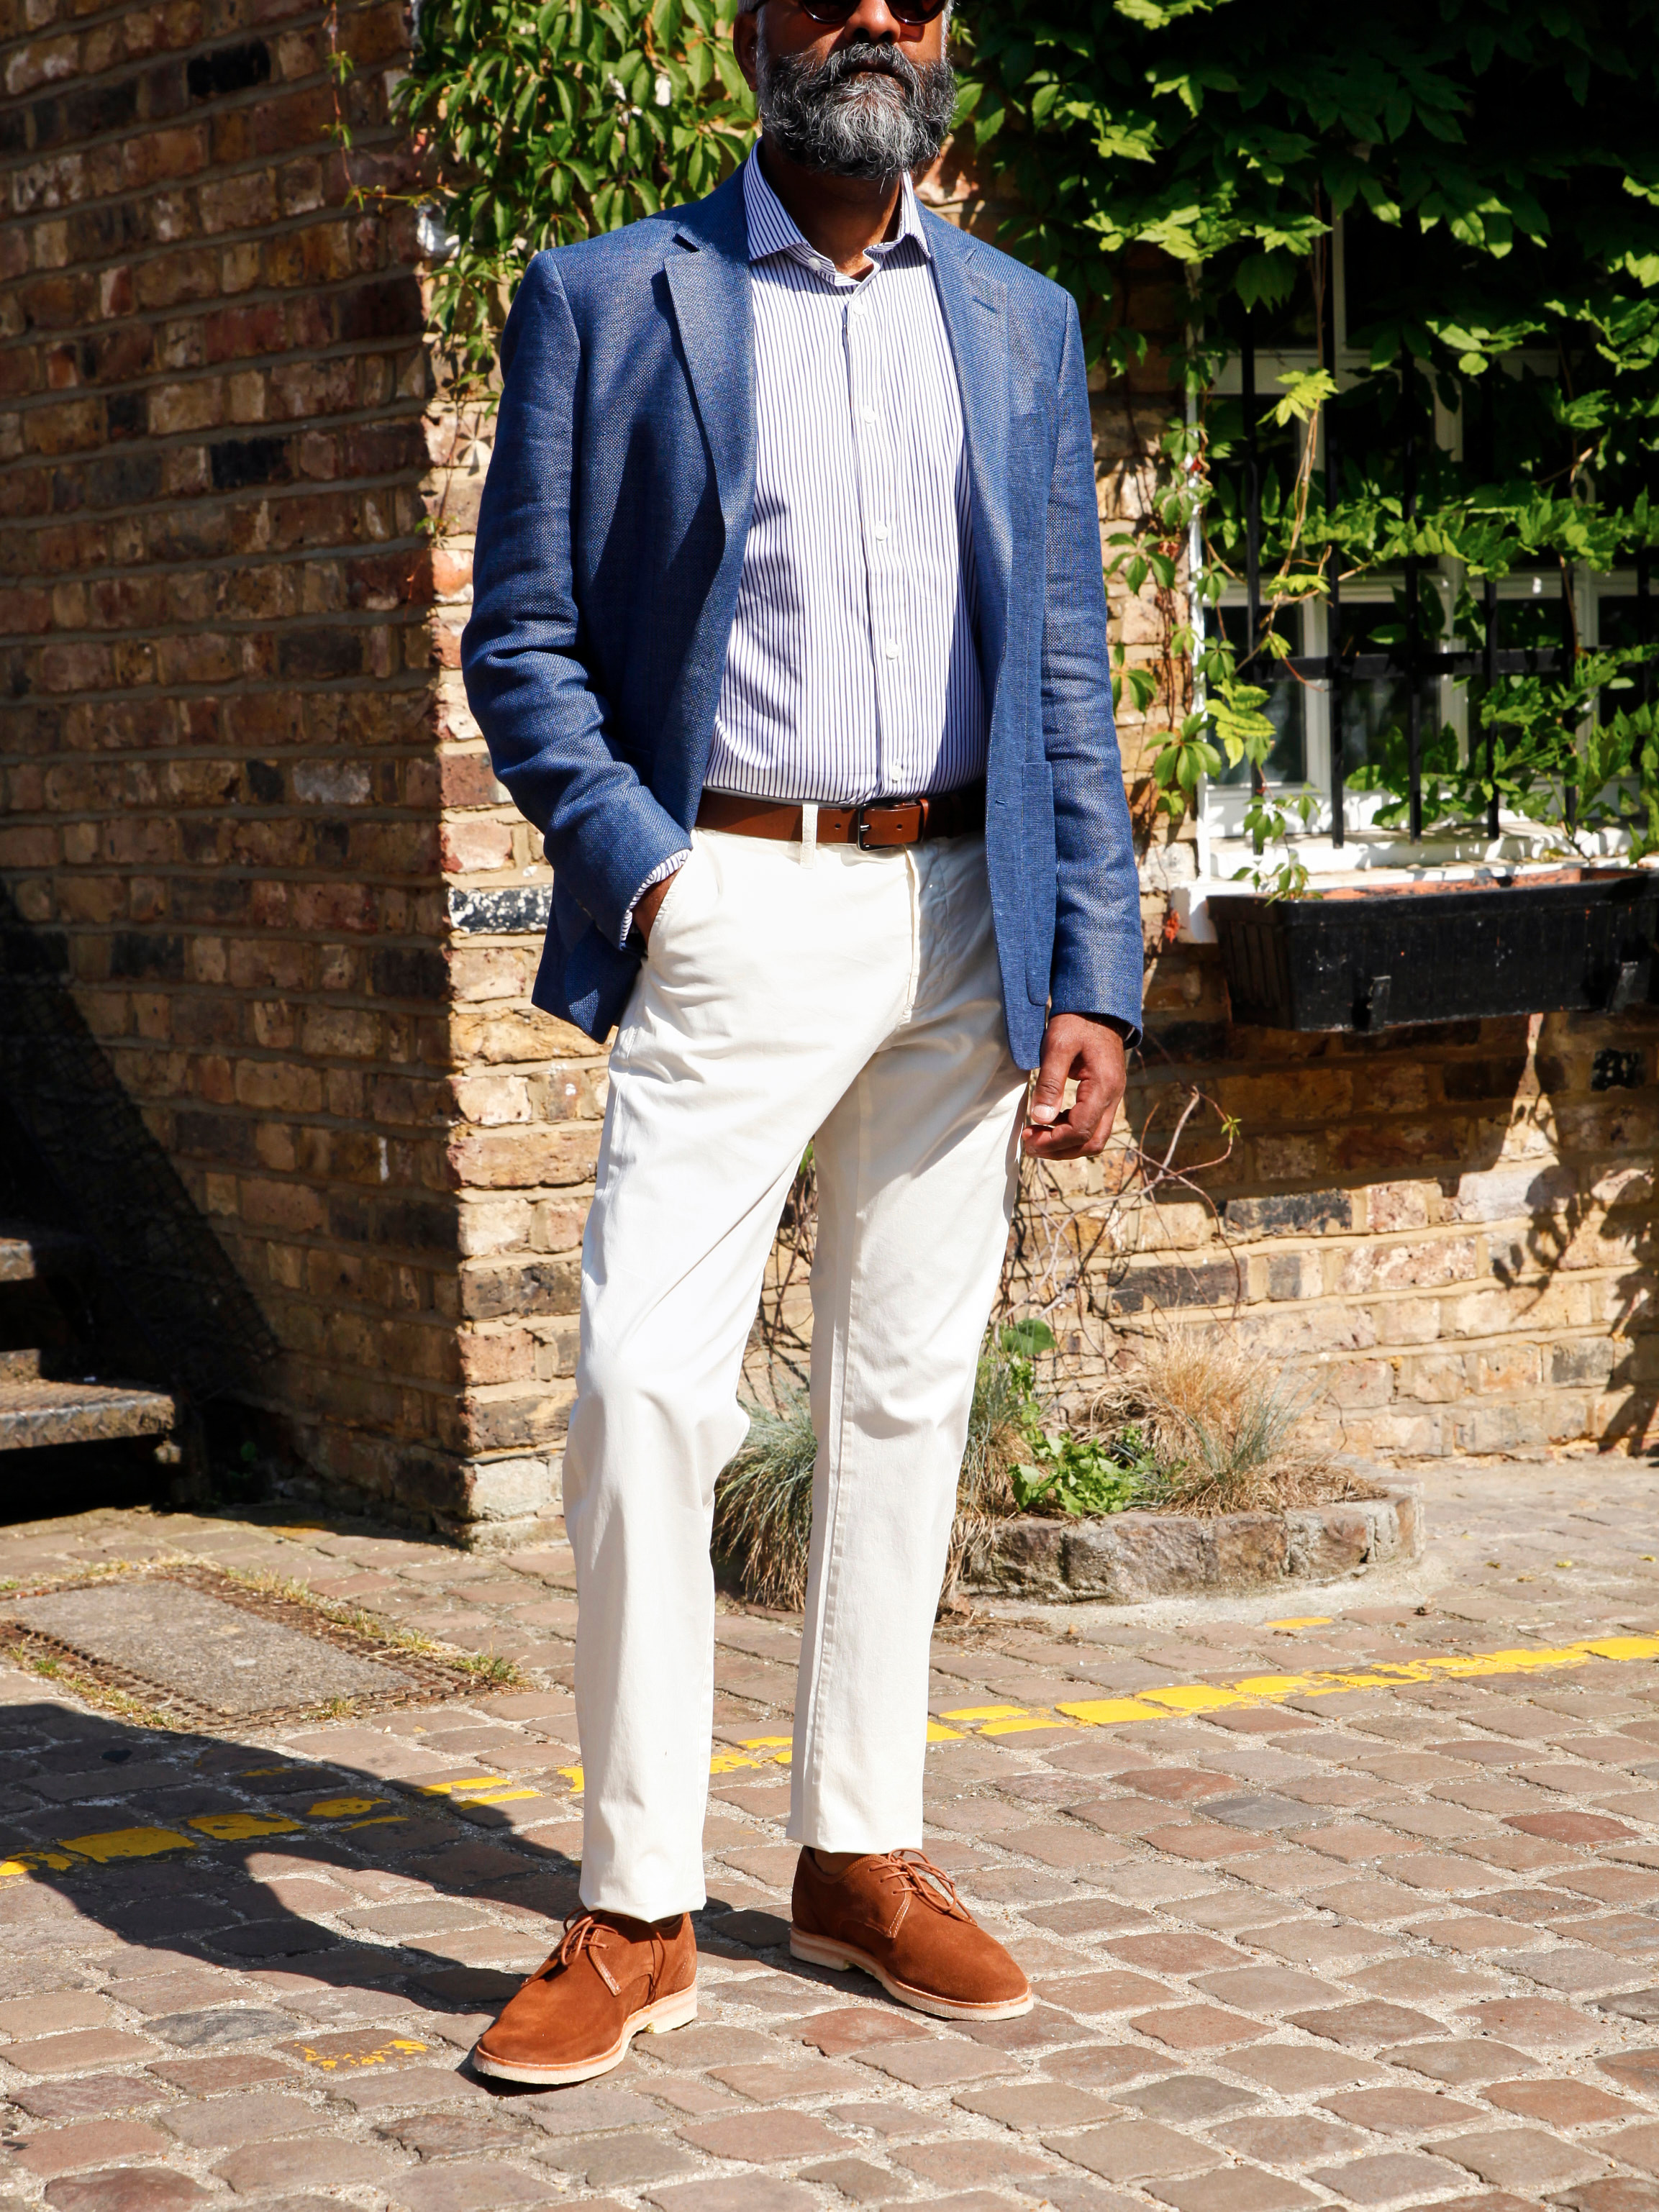 Men's outfit idea for 2021 with unstructured blazer, striped dress shirt, stone chinos, brown dress belt, suede shoes / desert shoes. Suitable for spring and summer.